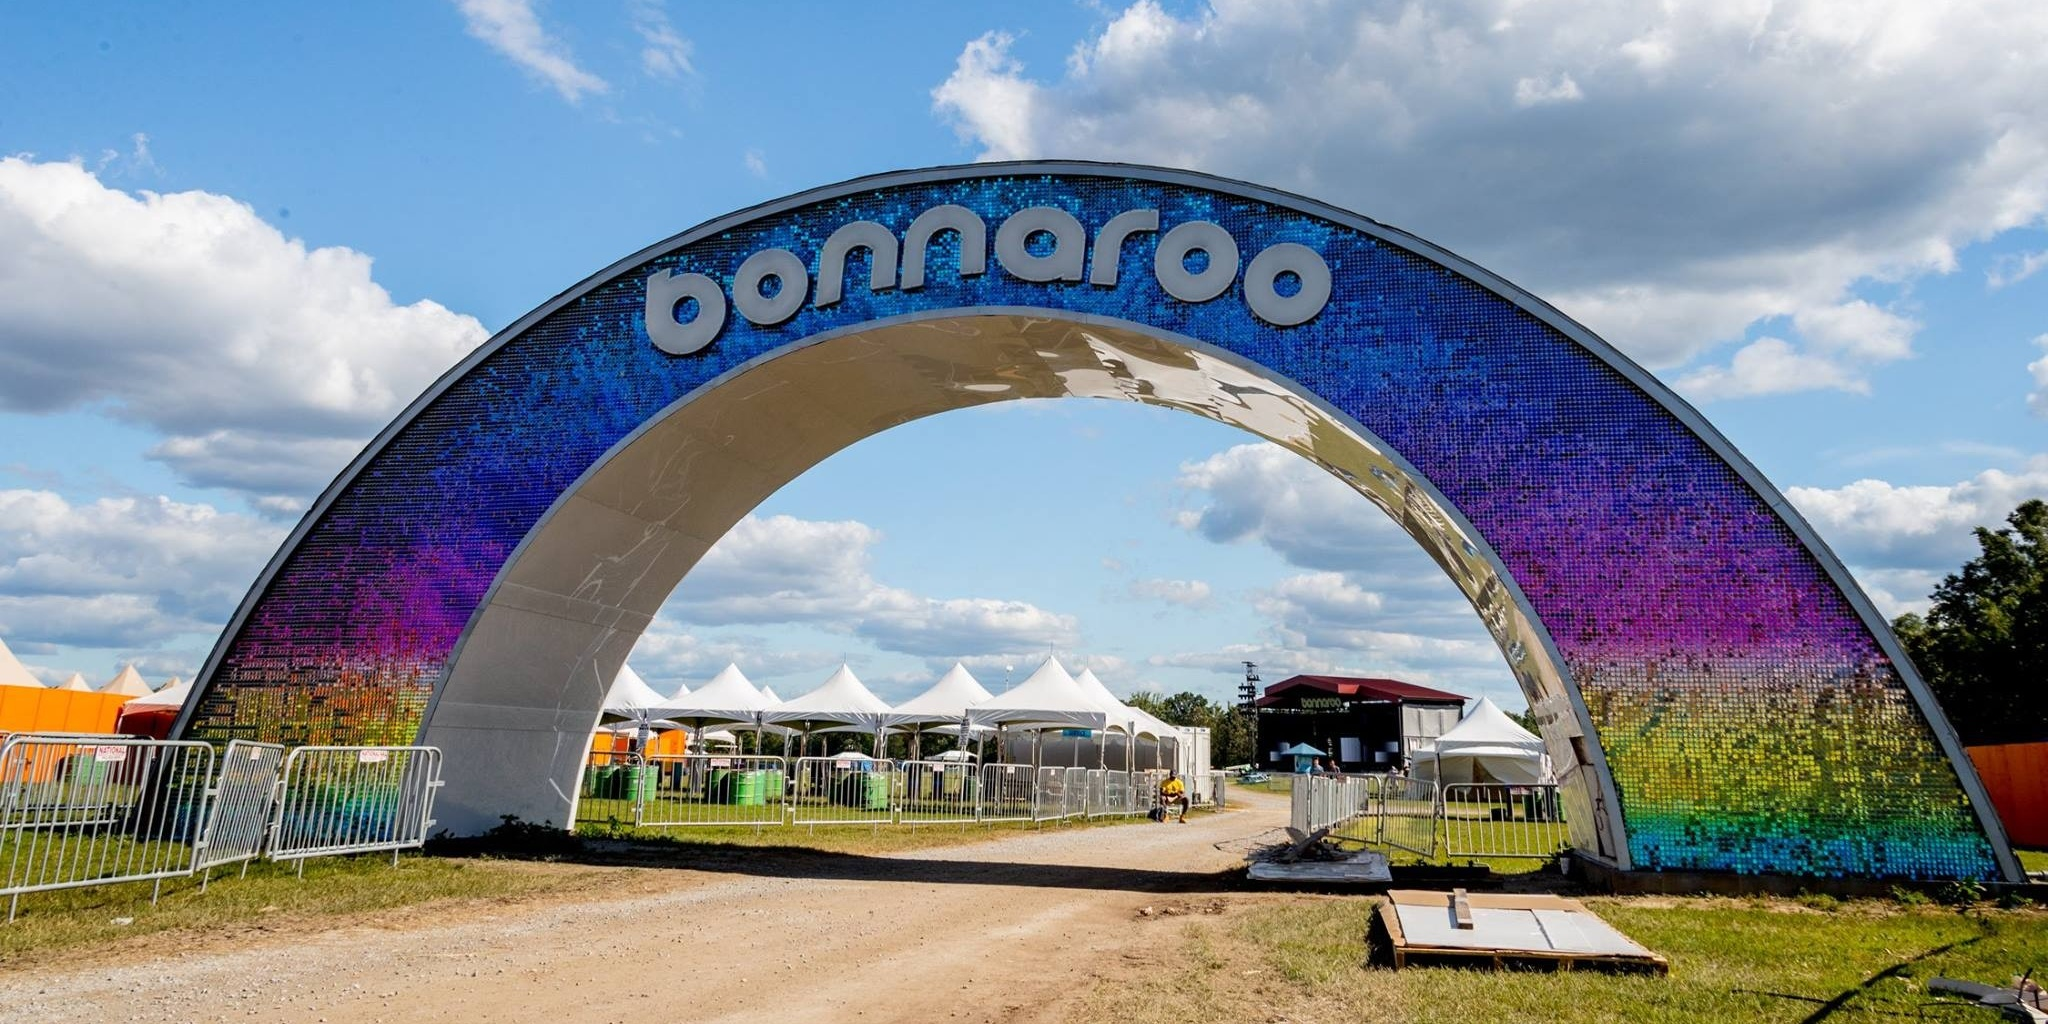 Free laundry service at a music festival? Bonnaroo has a stroke of genius